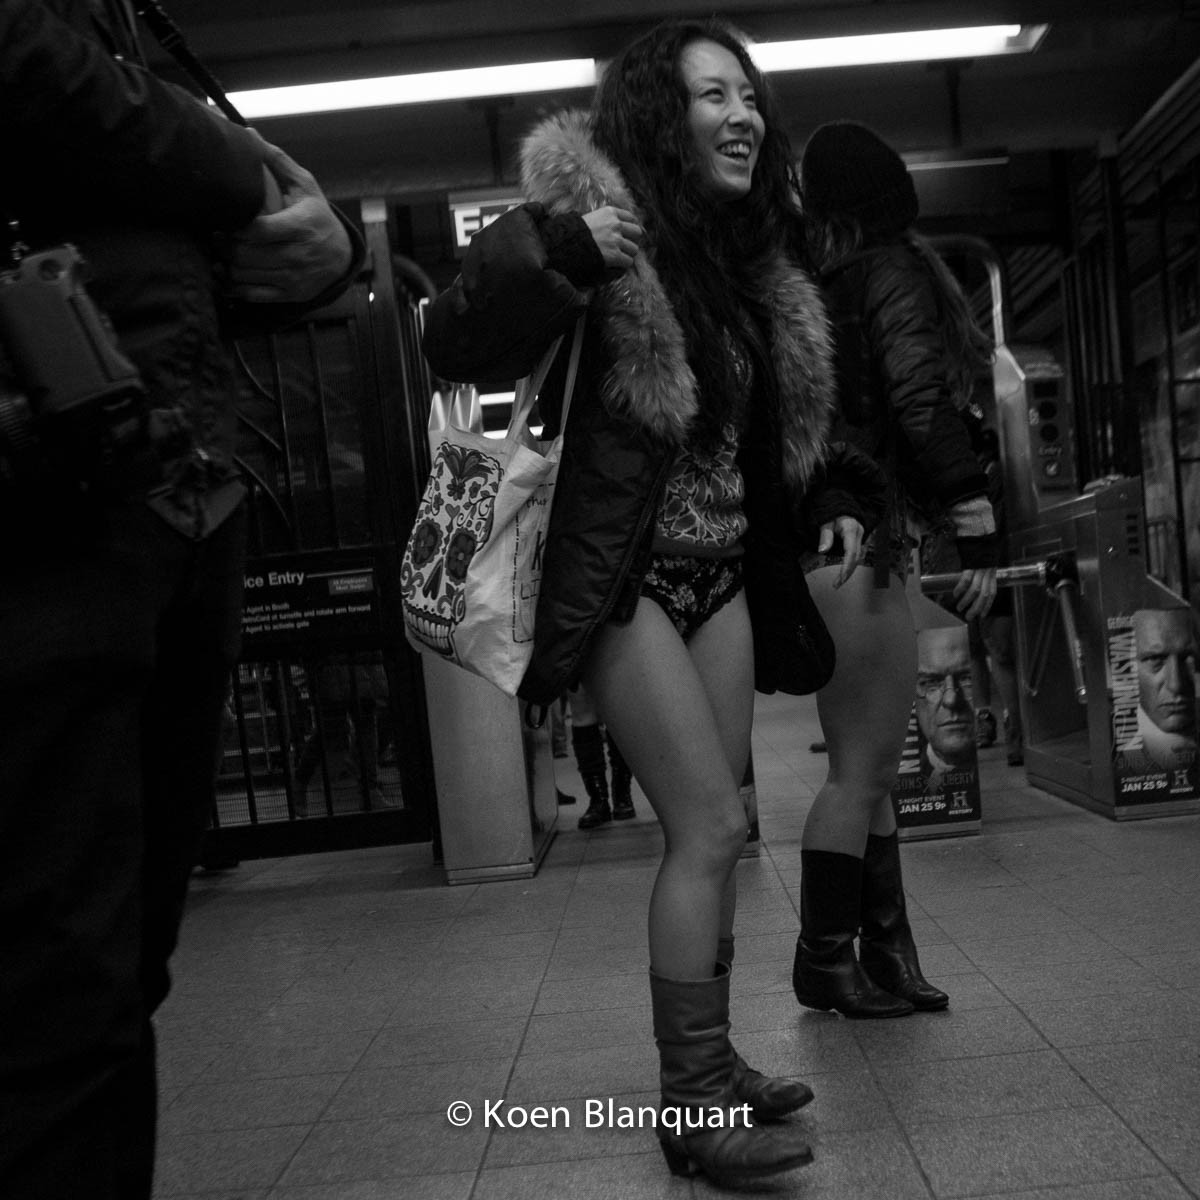 No Pants Subway Ride 2015 - Union Square Station